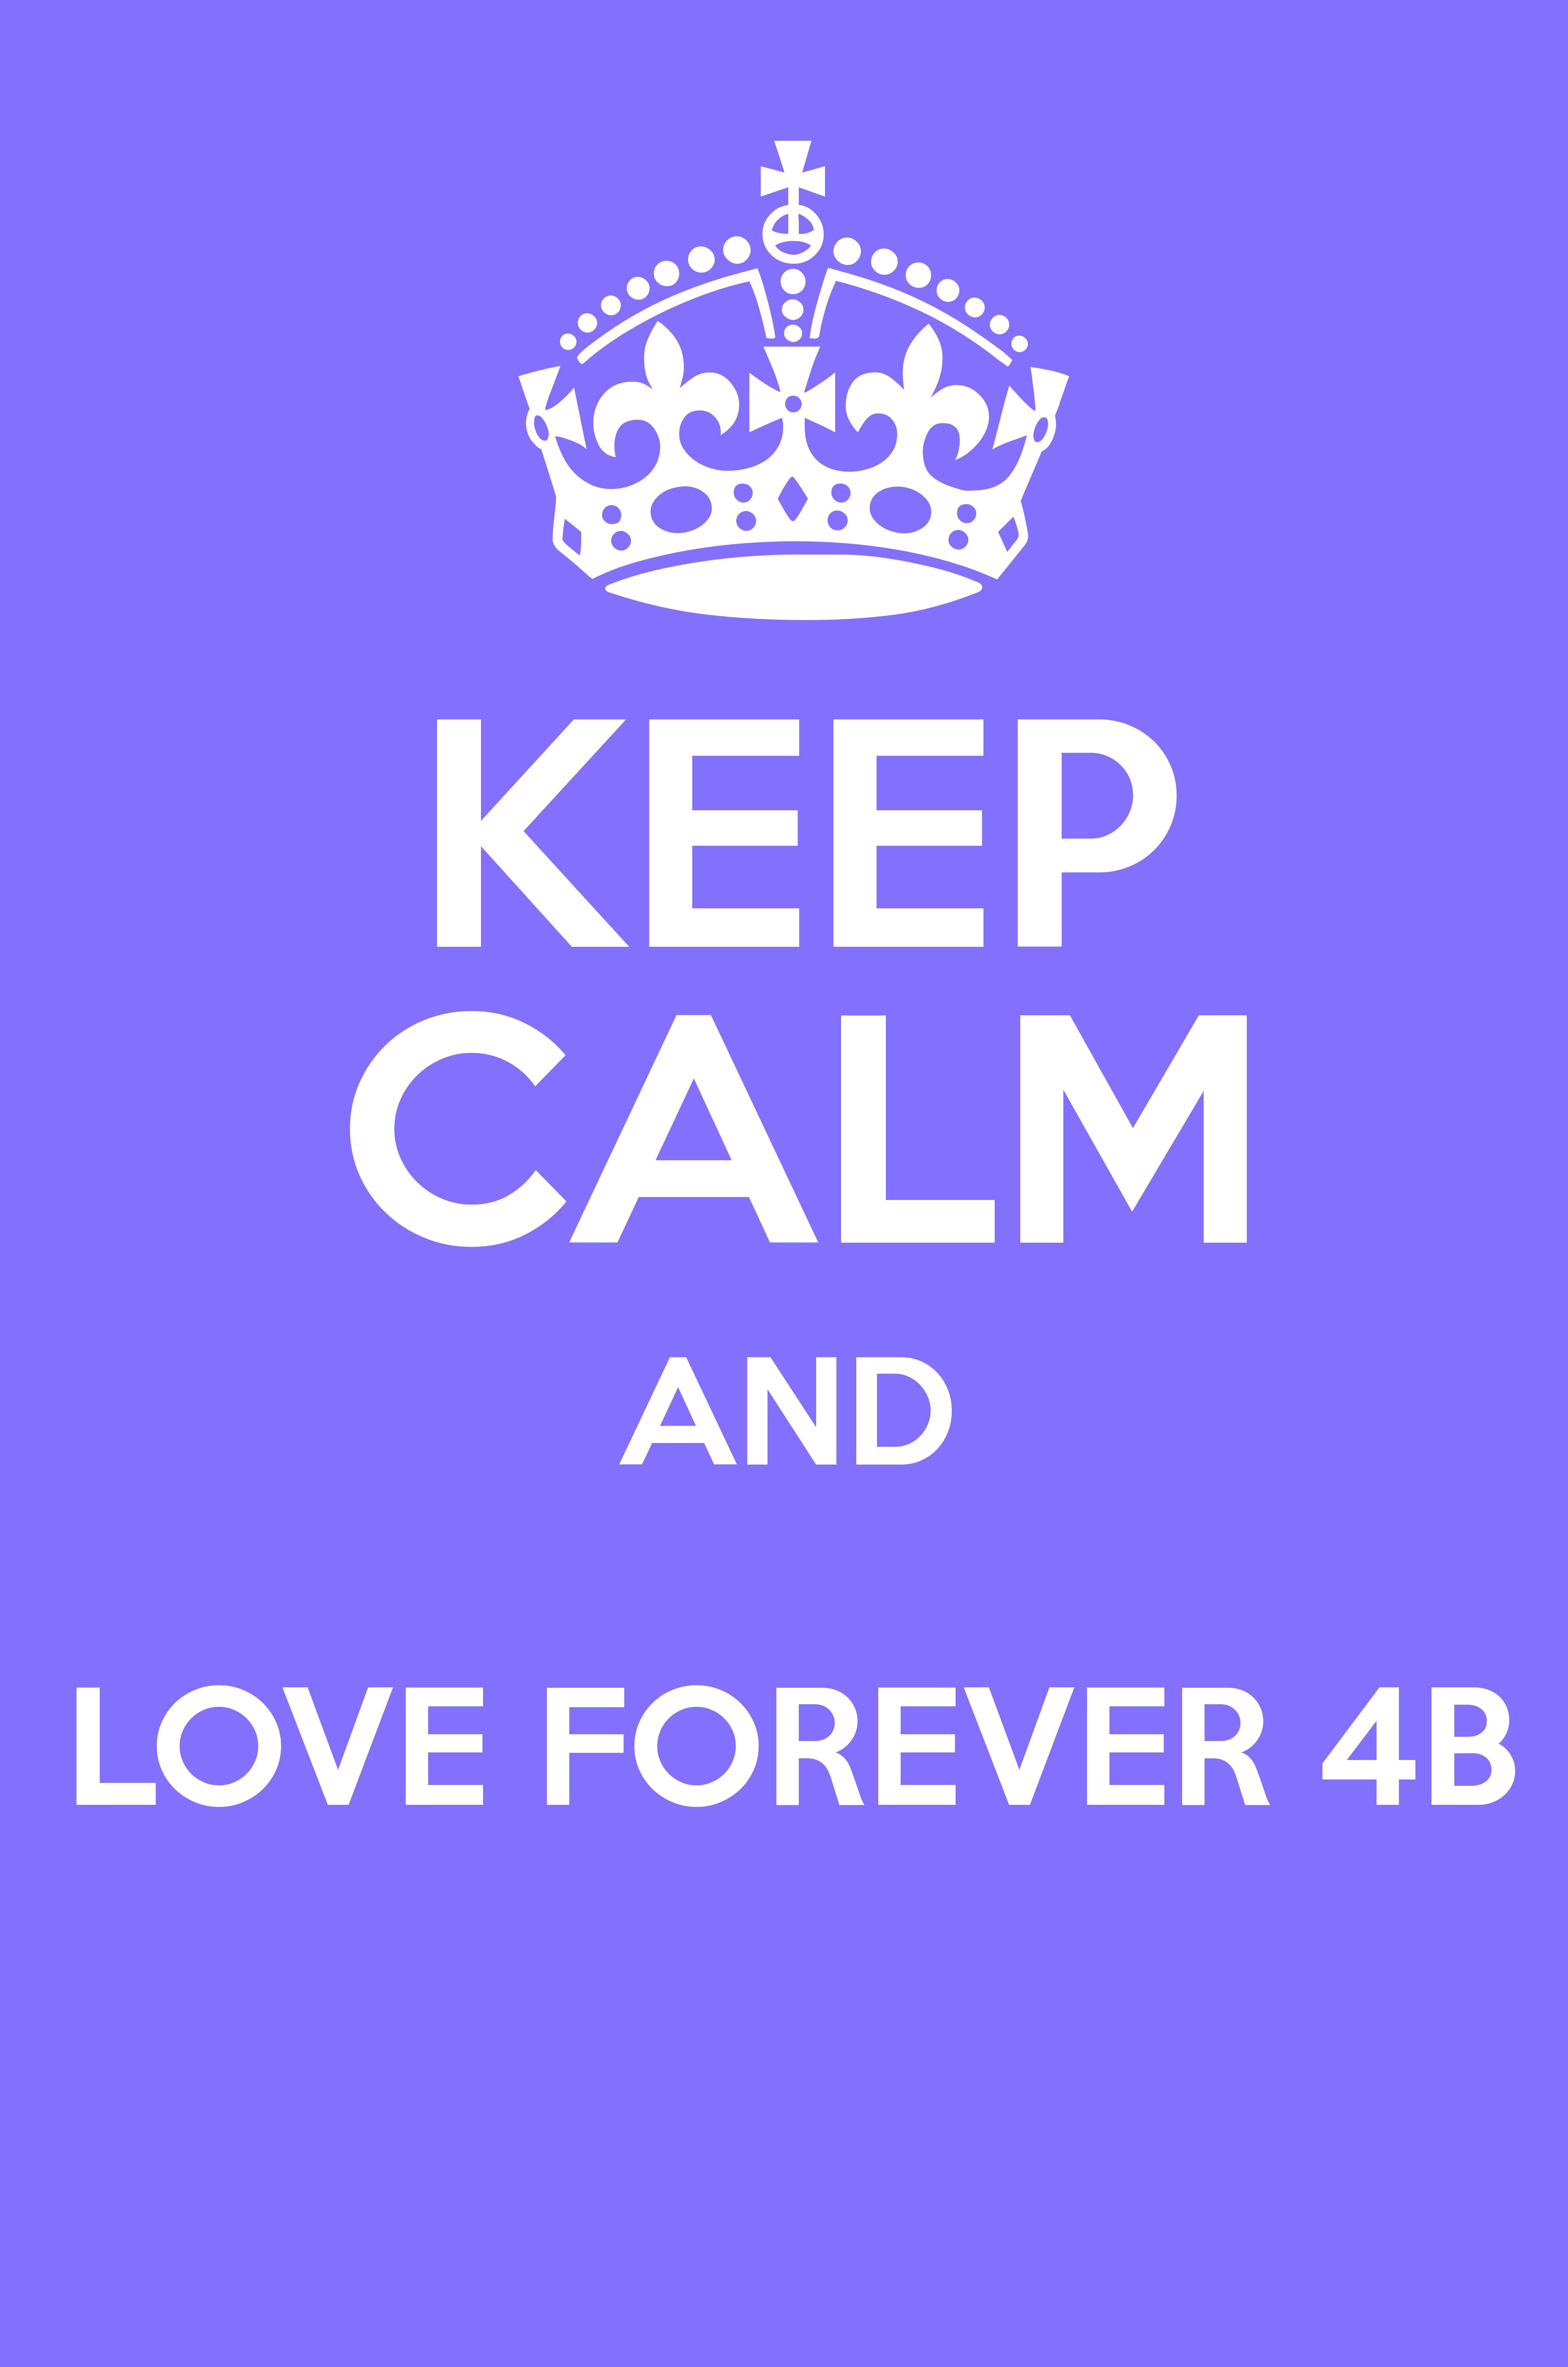 KEEP CALM AND LOVE FOREVER 4B - Keep Calm and Posters